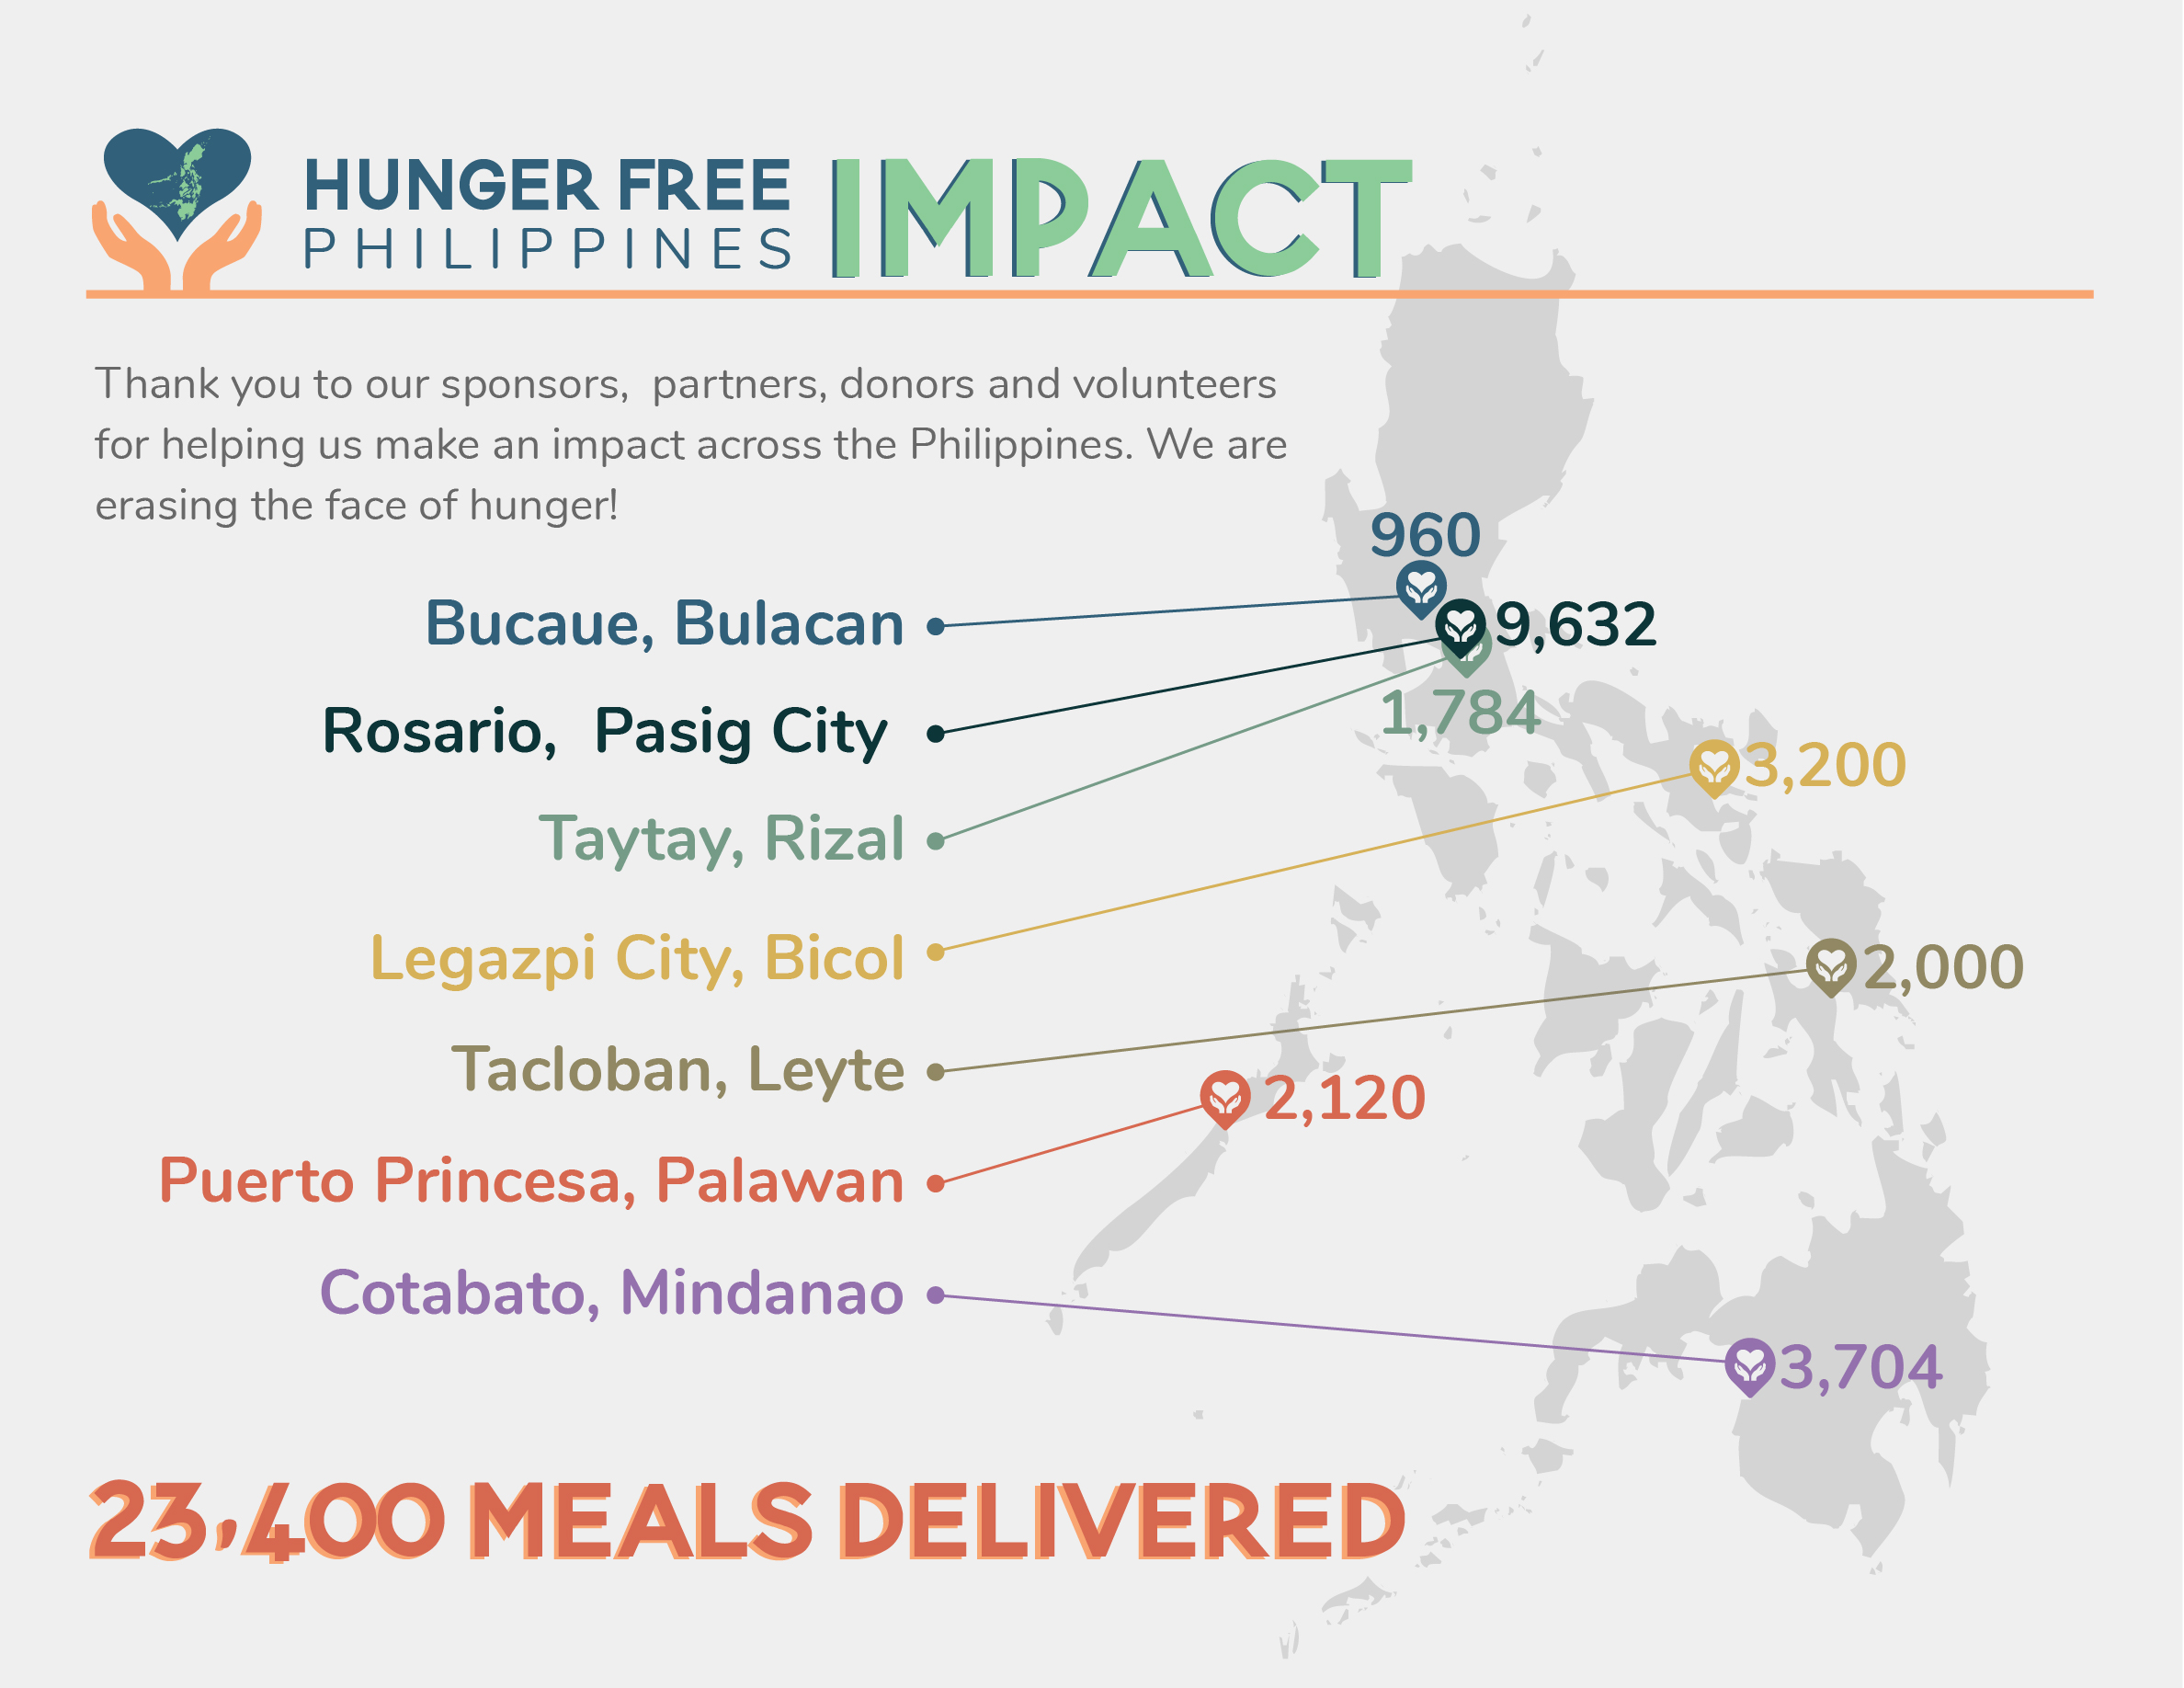 hunger-free-philippines-impact